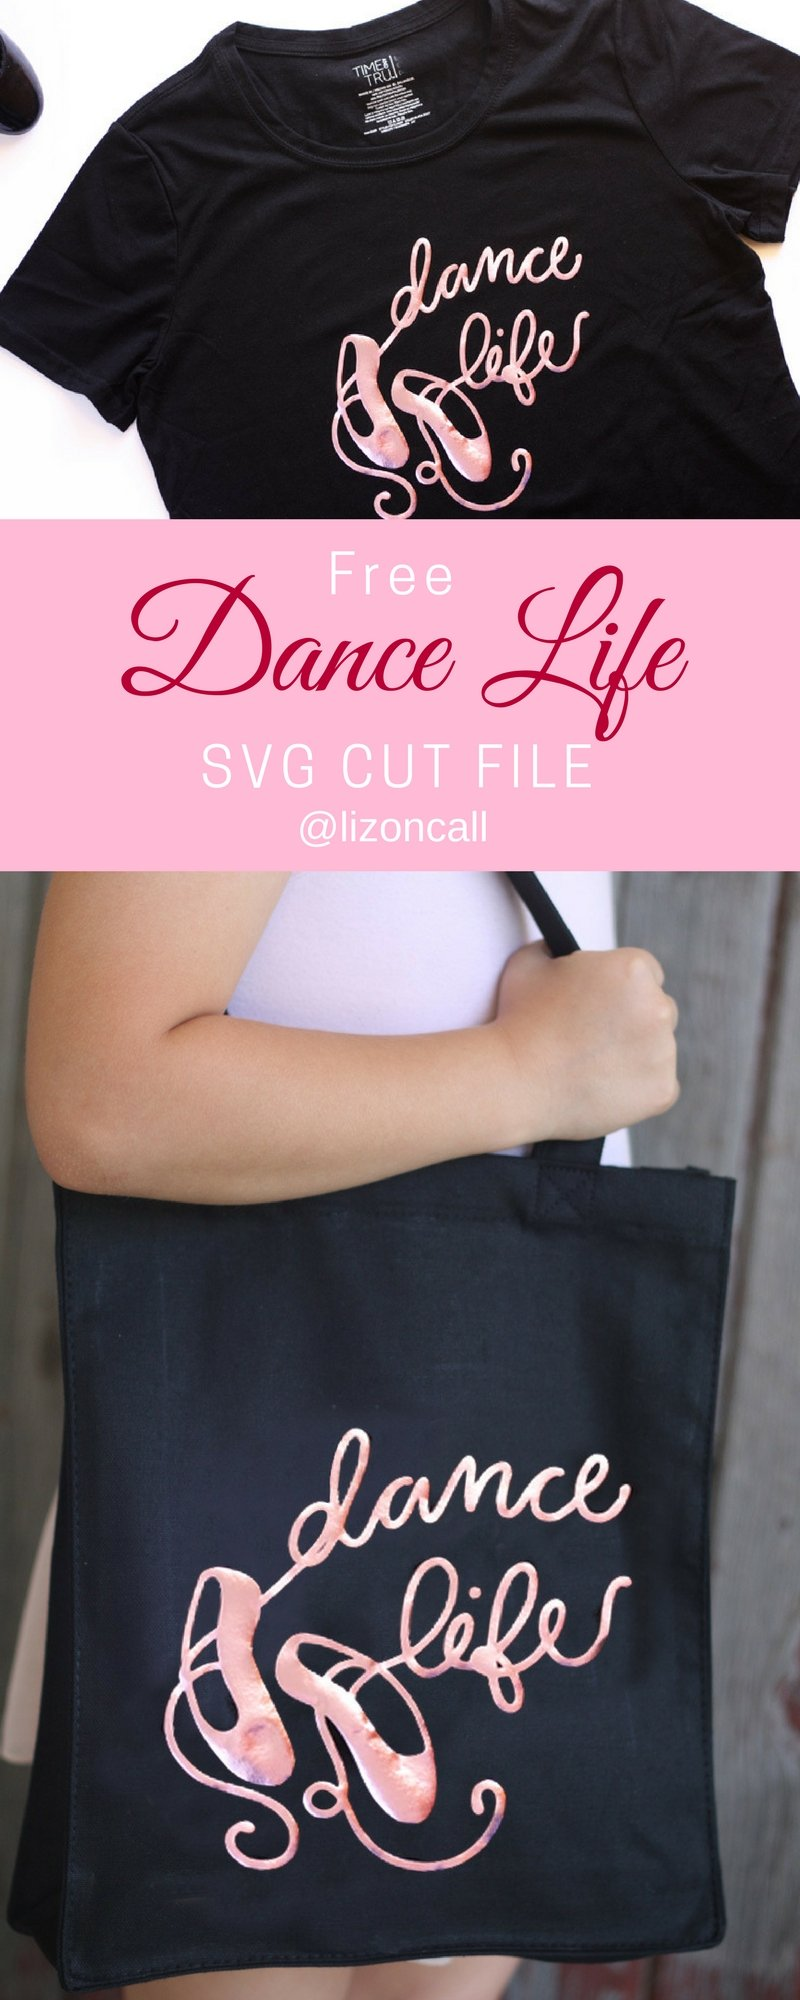 Making a cute DIY dance bag for your little dancer is super easy with this free cut file and iron on vinyl. Get the file and tutorial to make a cute bag or a fun t-shirt.